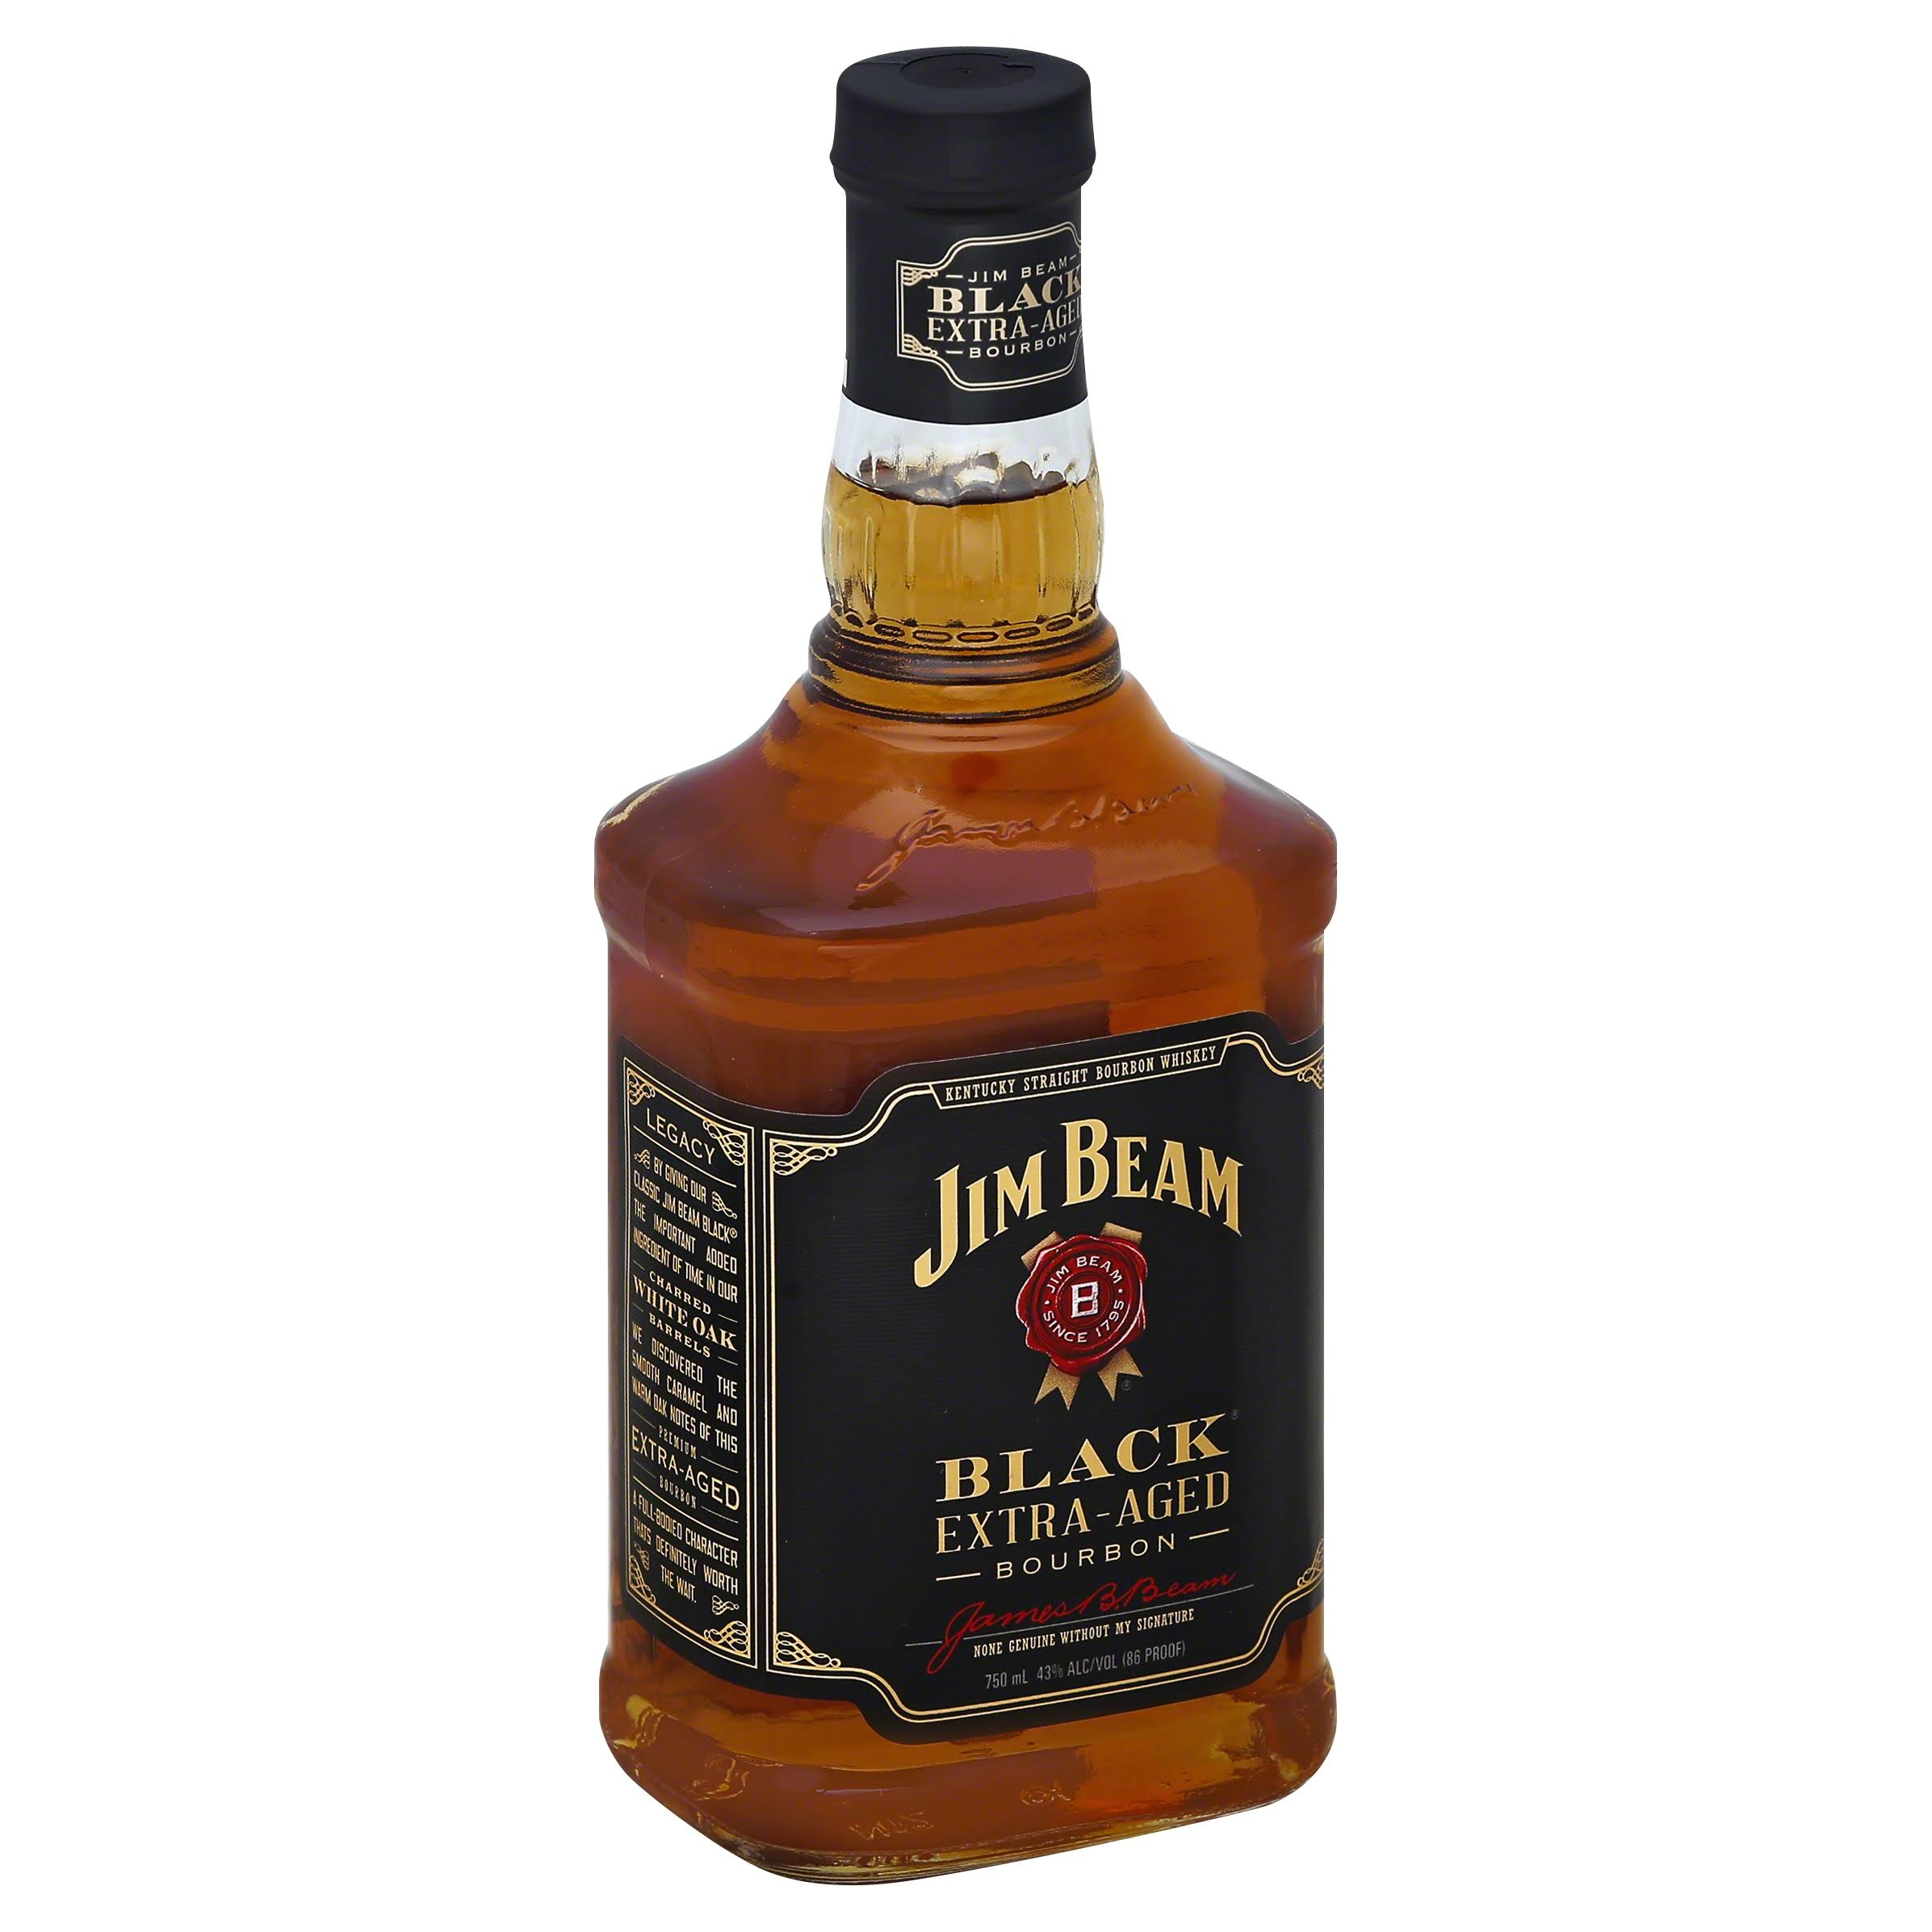 Jim Beam Black Sour Mash Kentucky Straight Bourbon Whiskey